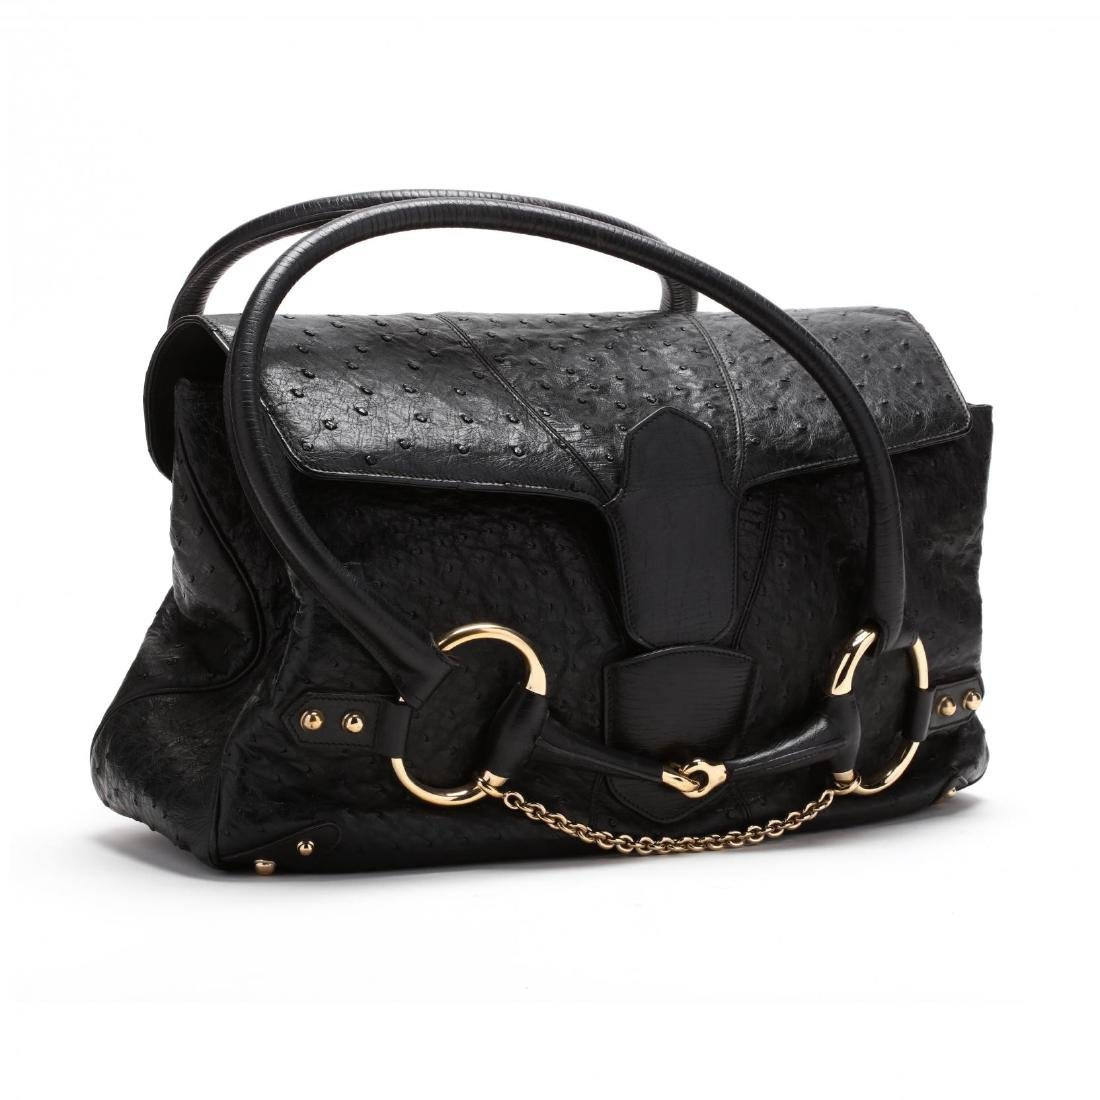 Black Ostrich Leather Satchel Bag, Gucci